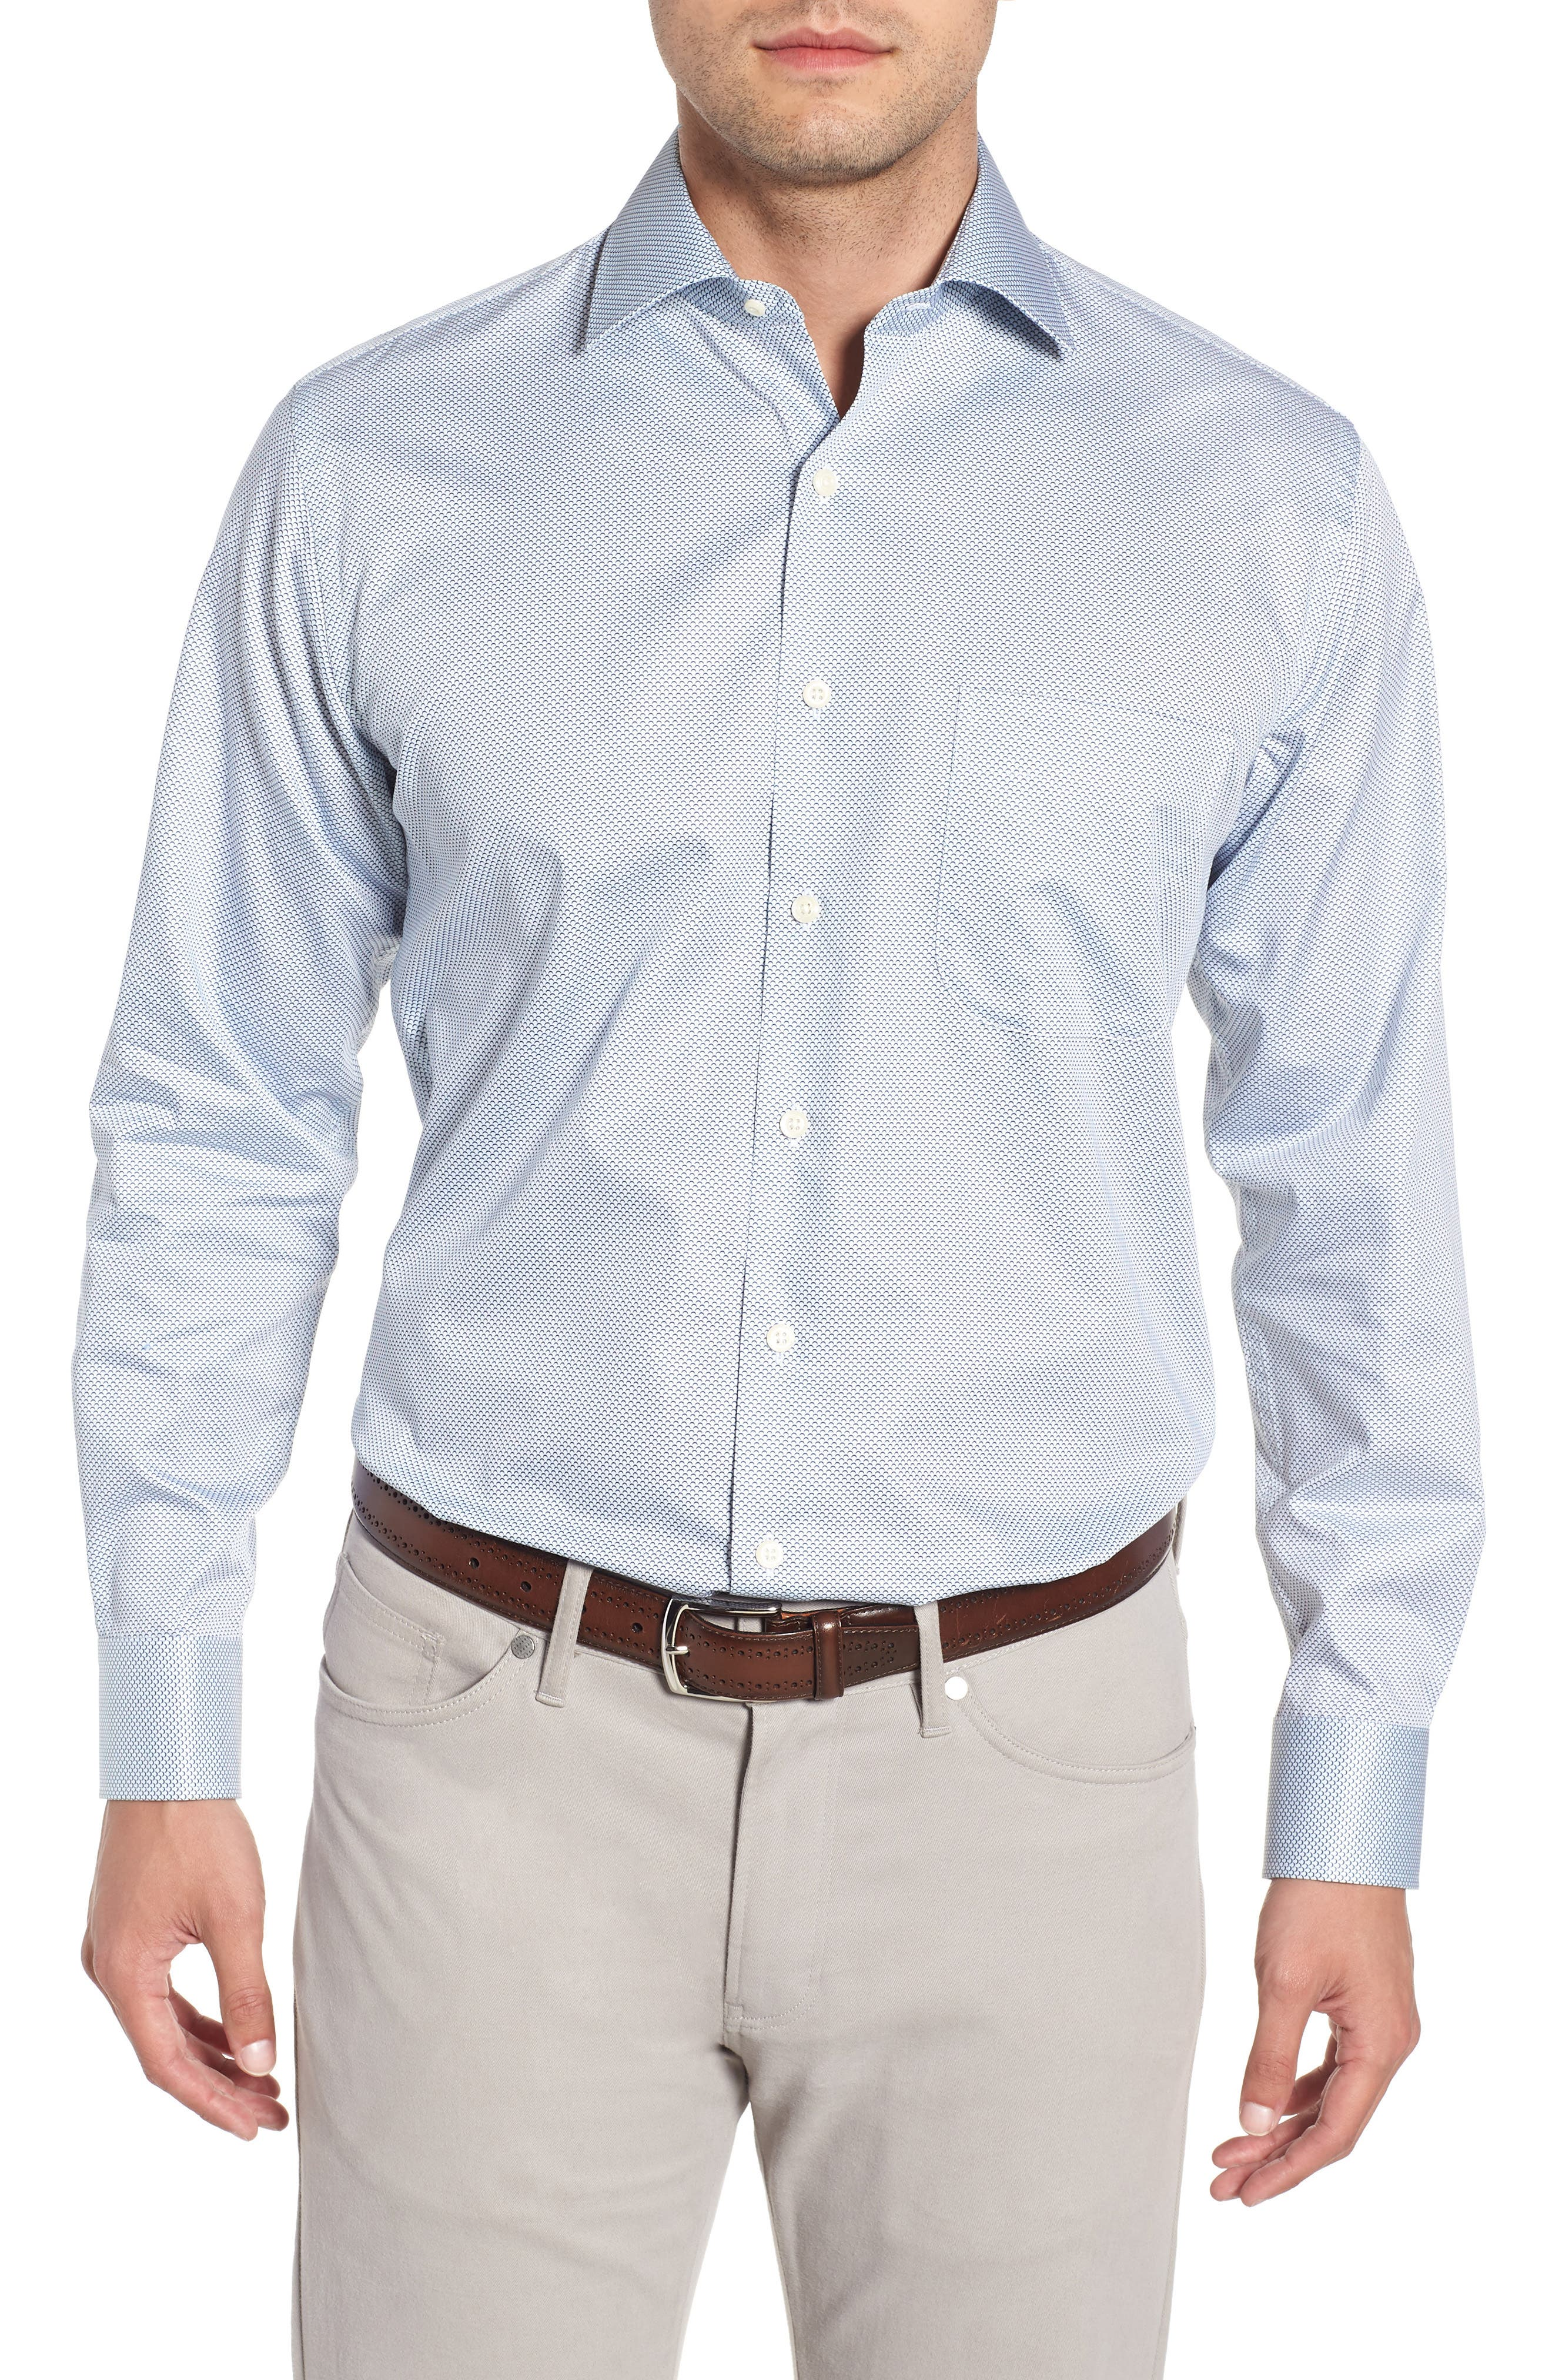 Off the Scale Print Sport Shirt,                         Main,                         color, White